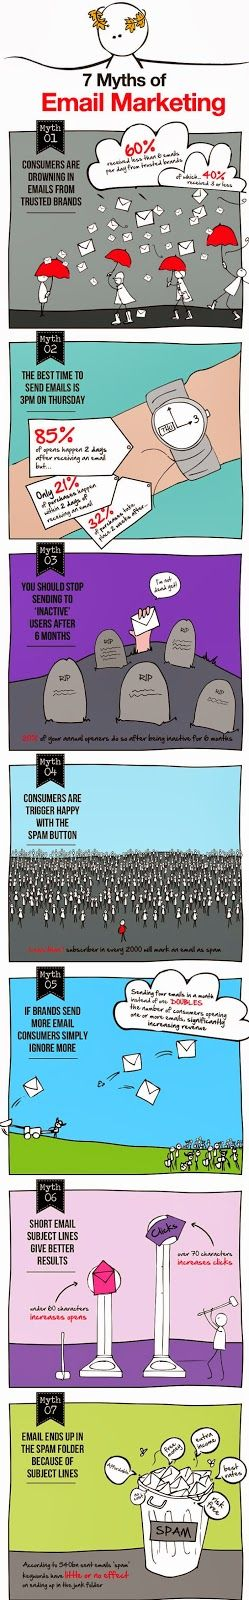 7 myths of Email marketing in the form of Infographic @ emailchopper.com